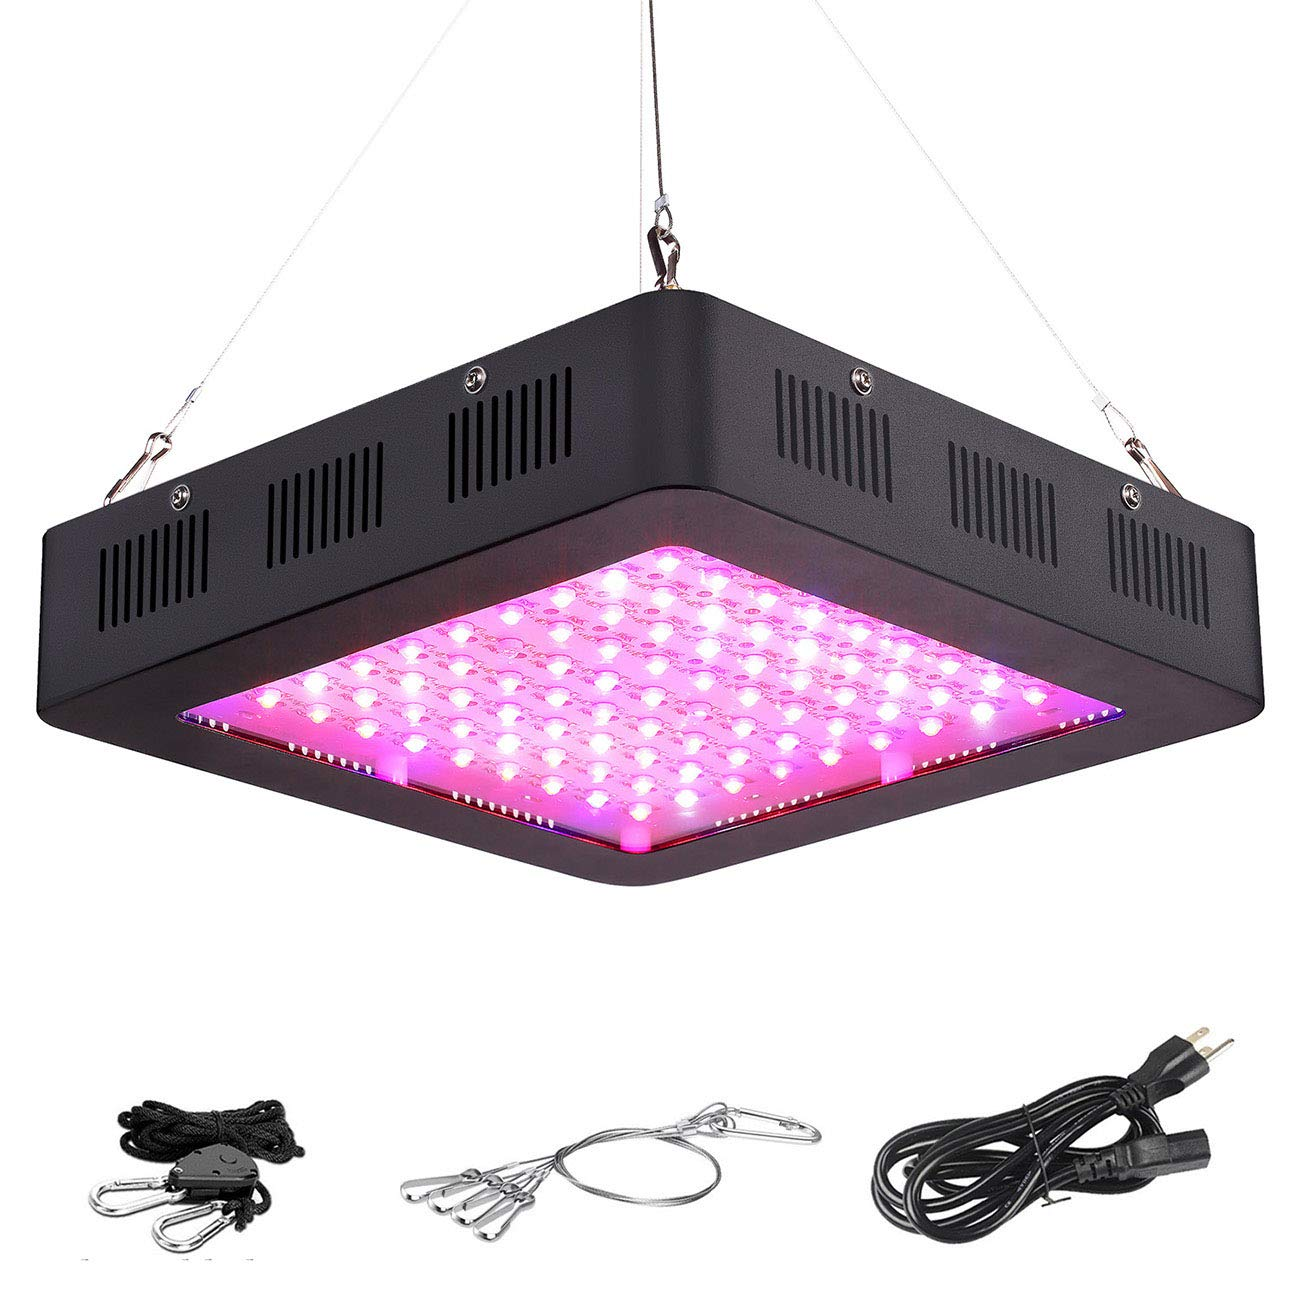 VIHIMAI 1000W LED Grow Lamp